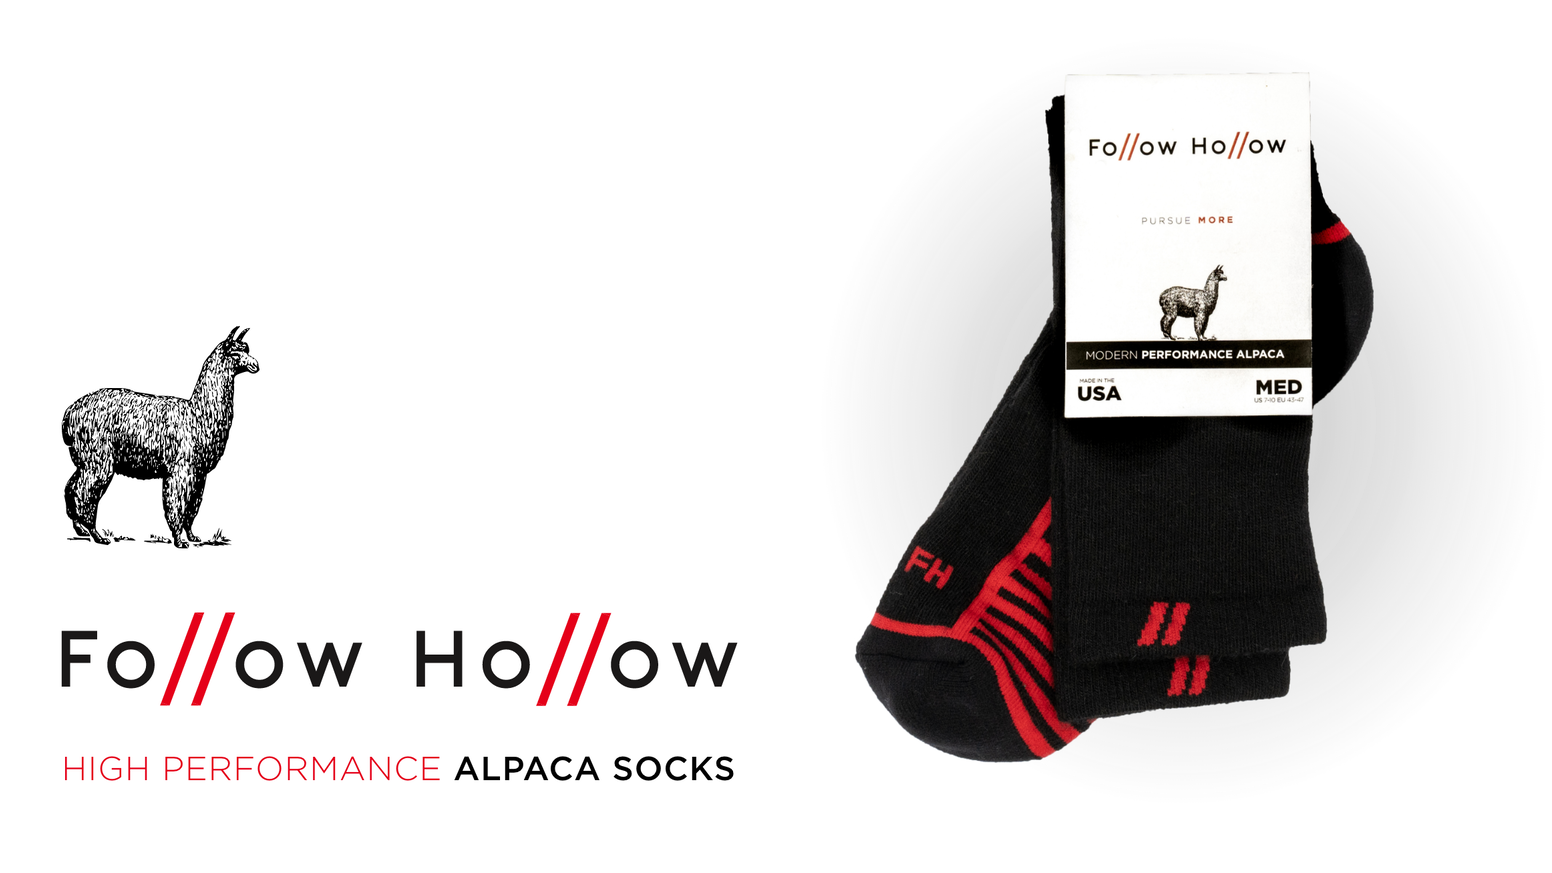 Premium Baby Alpaca Fiber + USA Manufacturing = Performance Alpaca Socks ✅ No Itch ✅ No Stink ✅ No Quit